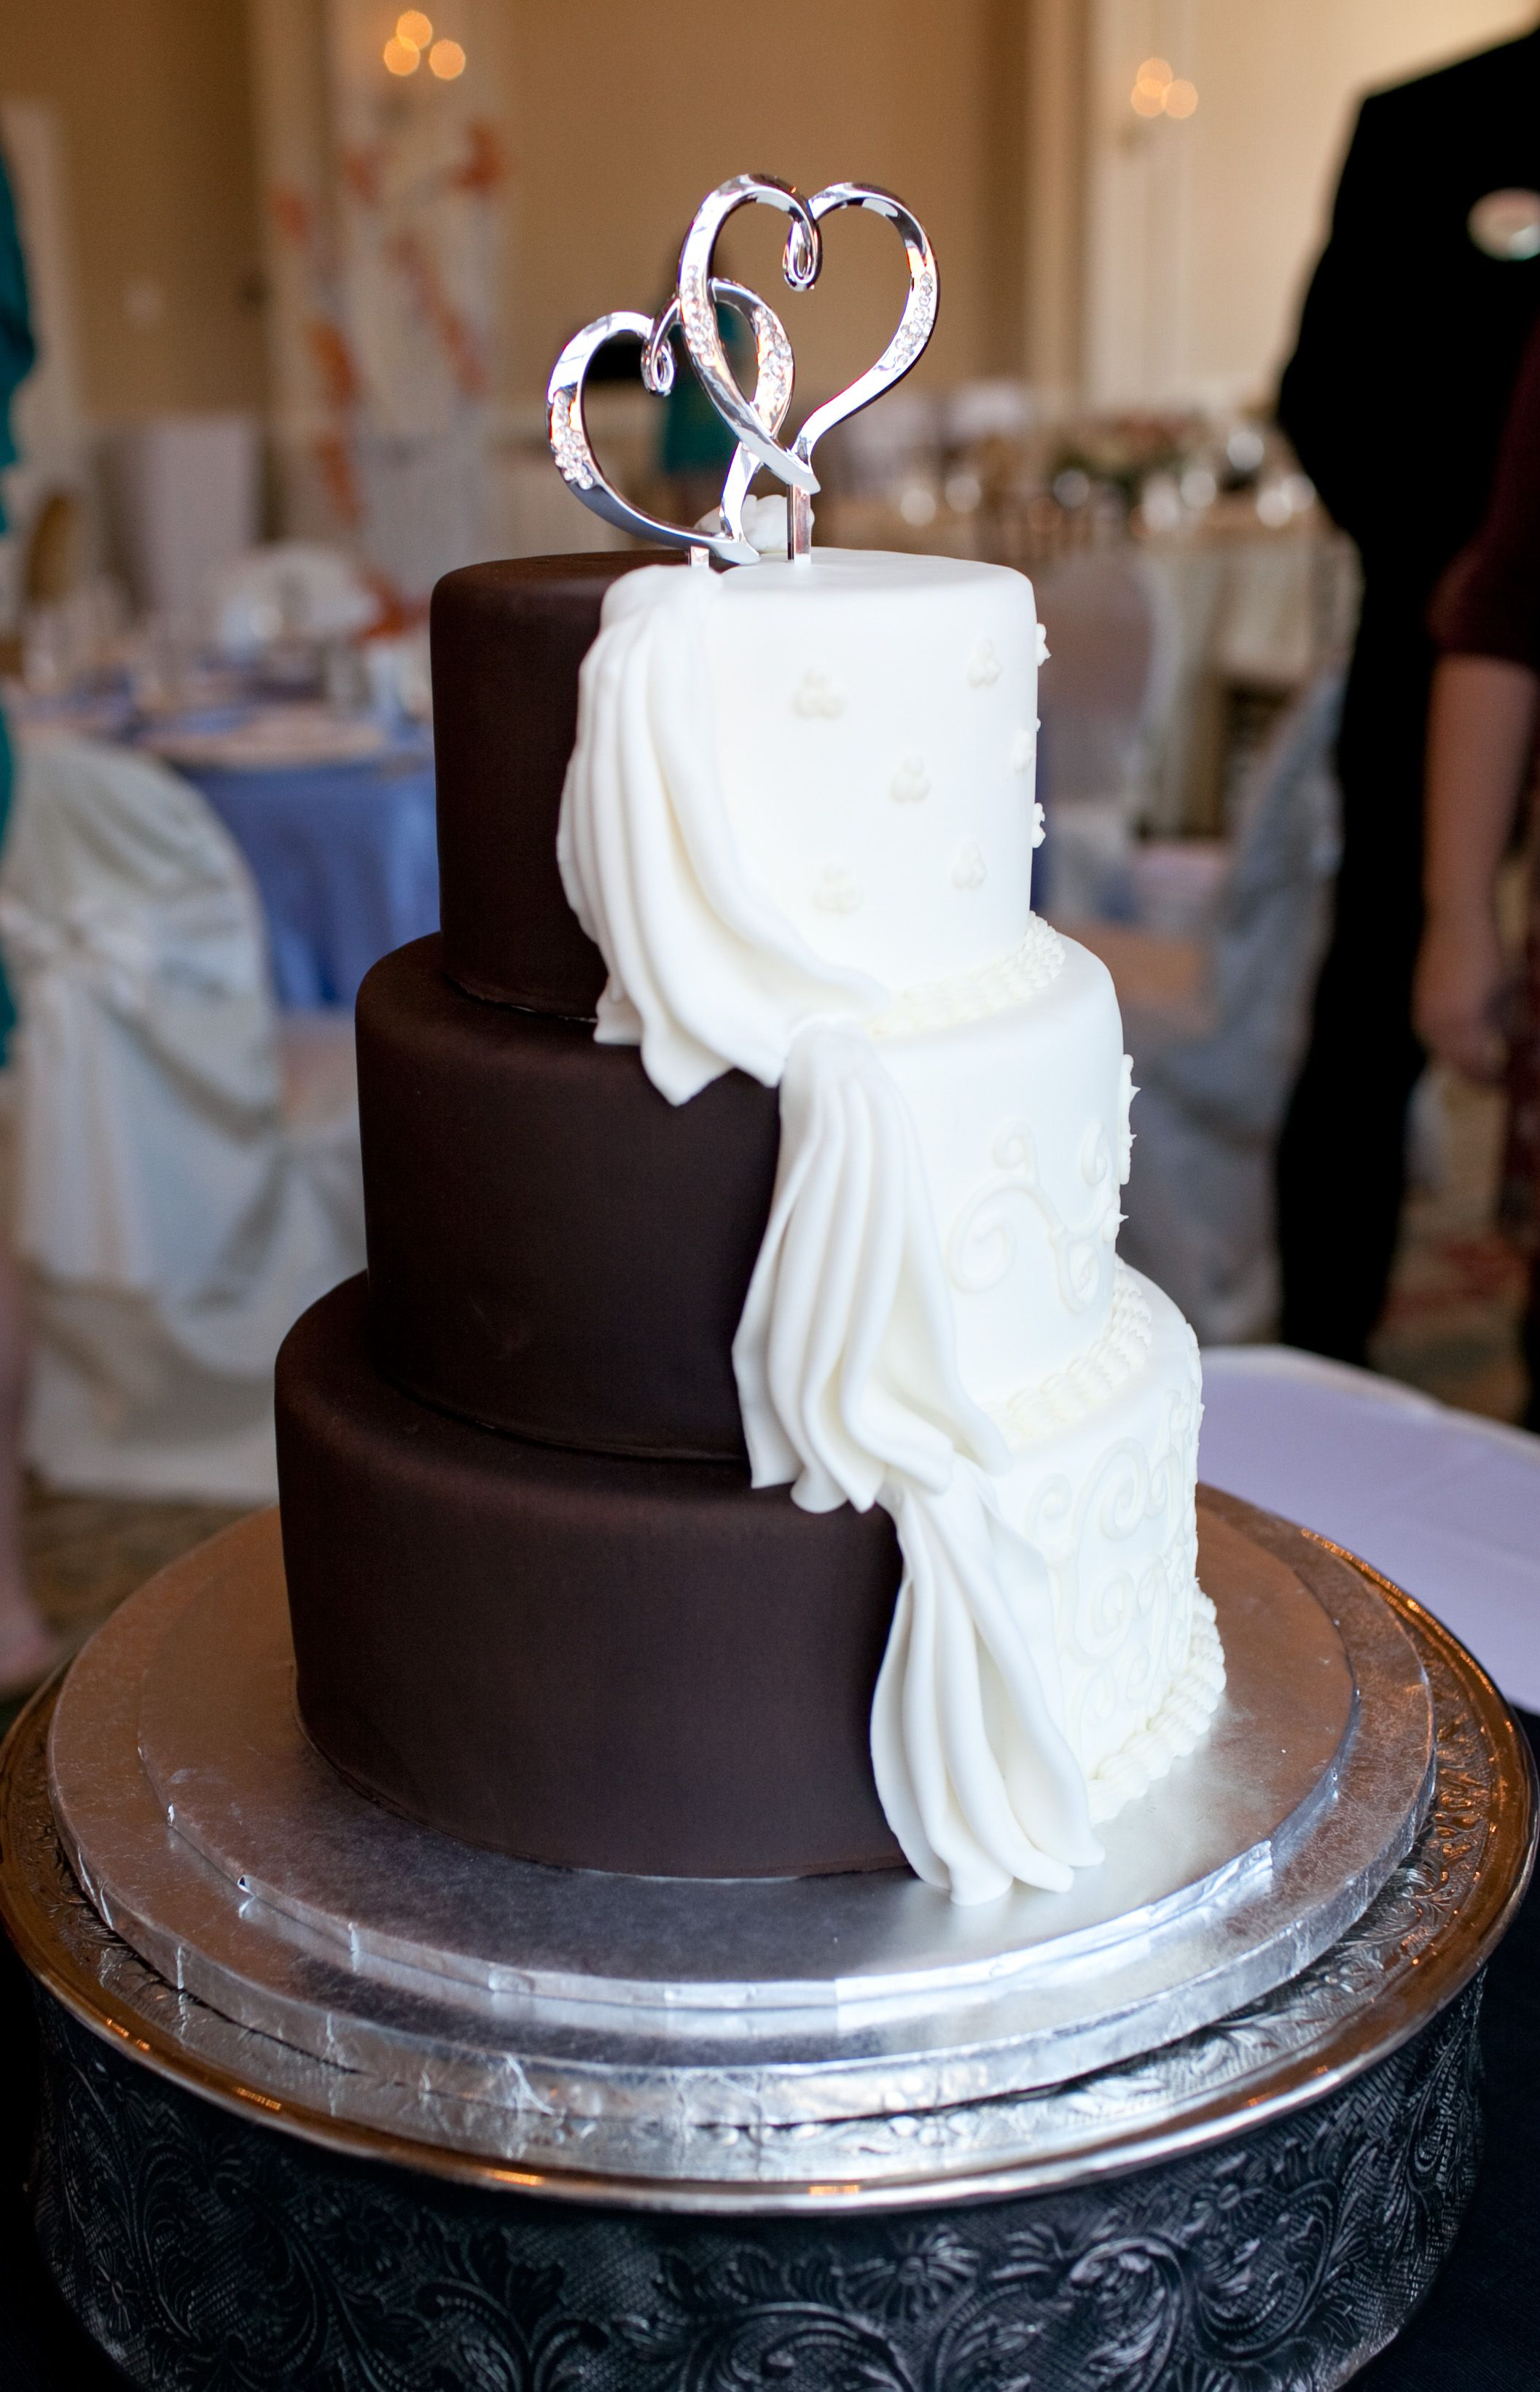 Half White Half Chocolate Wedding Cake Love The Way The Icing Is